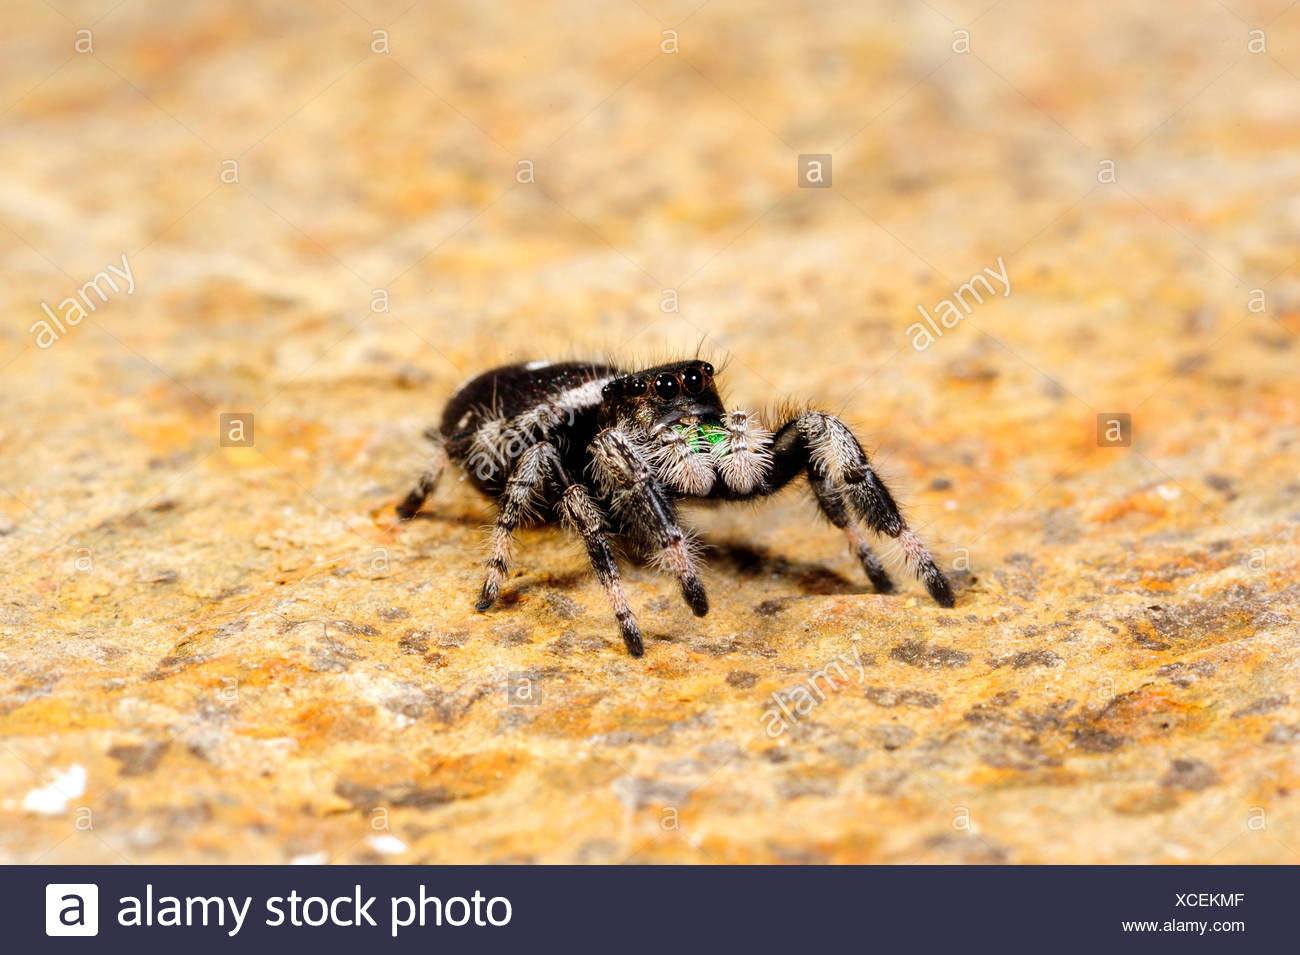 jumping spiders, regal jumping spider (Phidippus regius), male - Stock Image